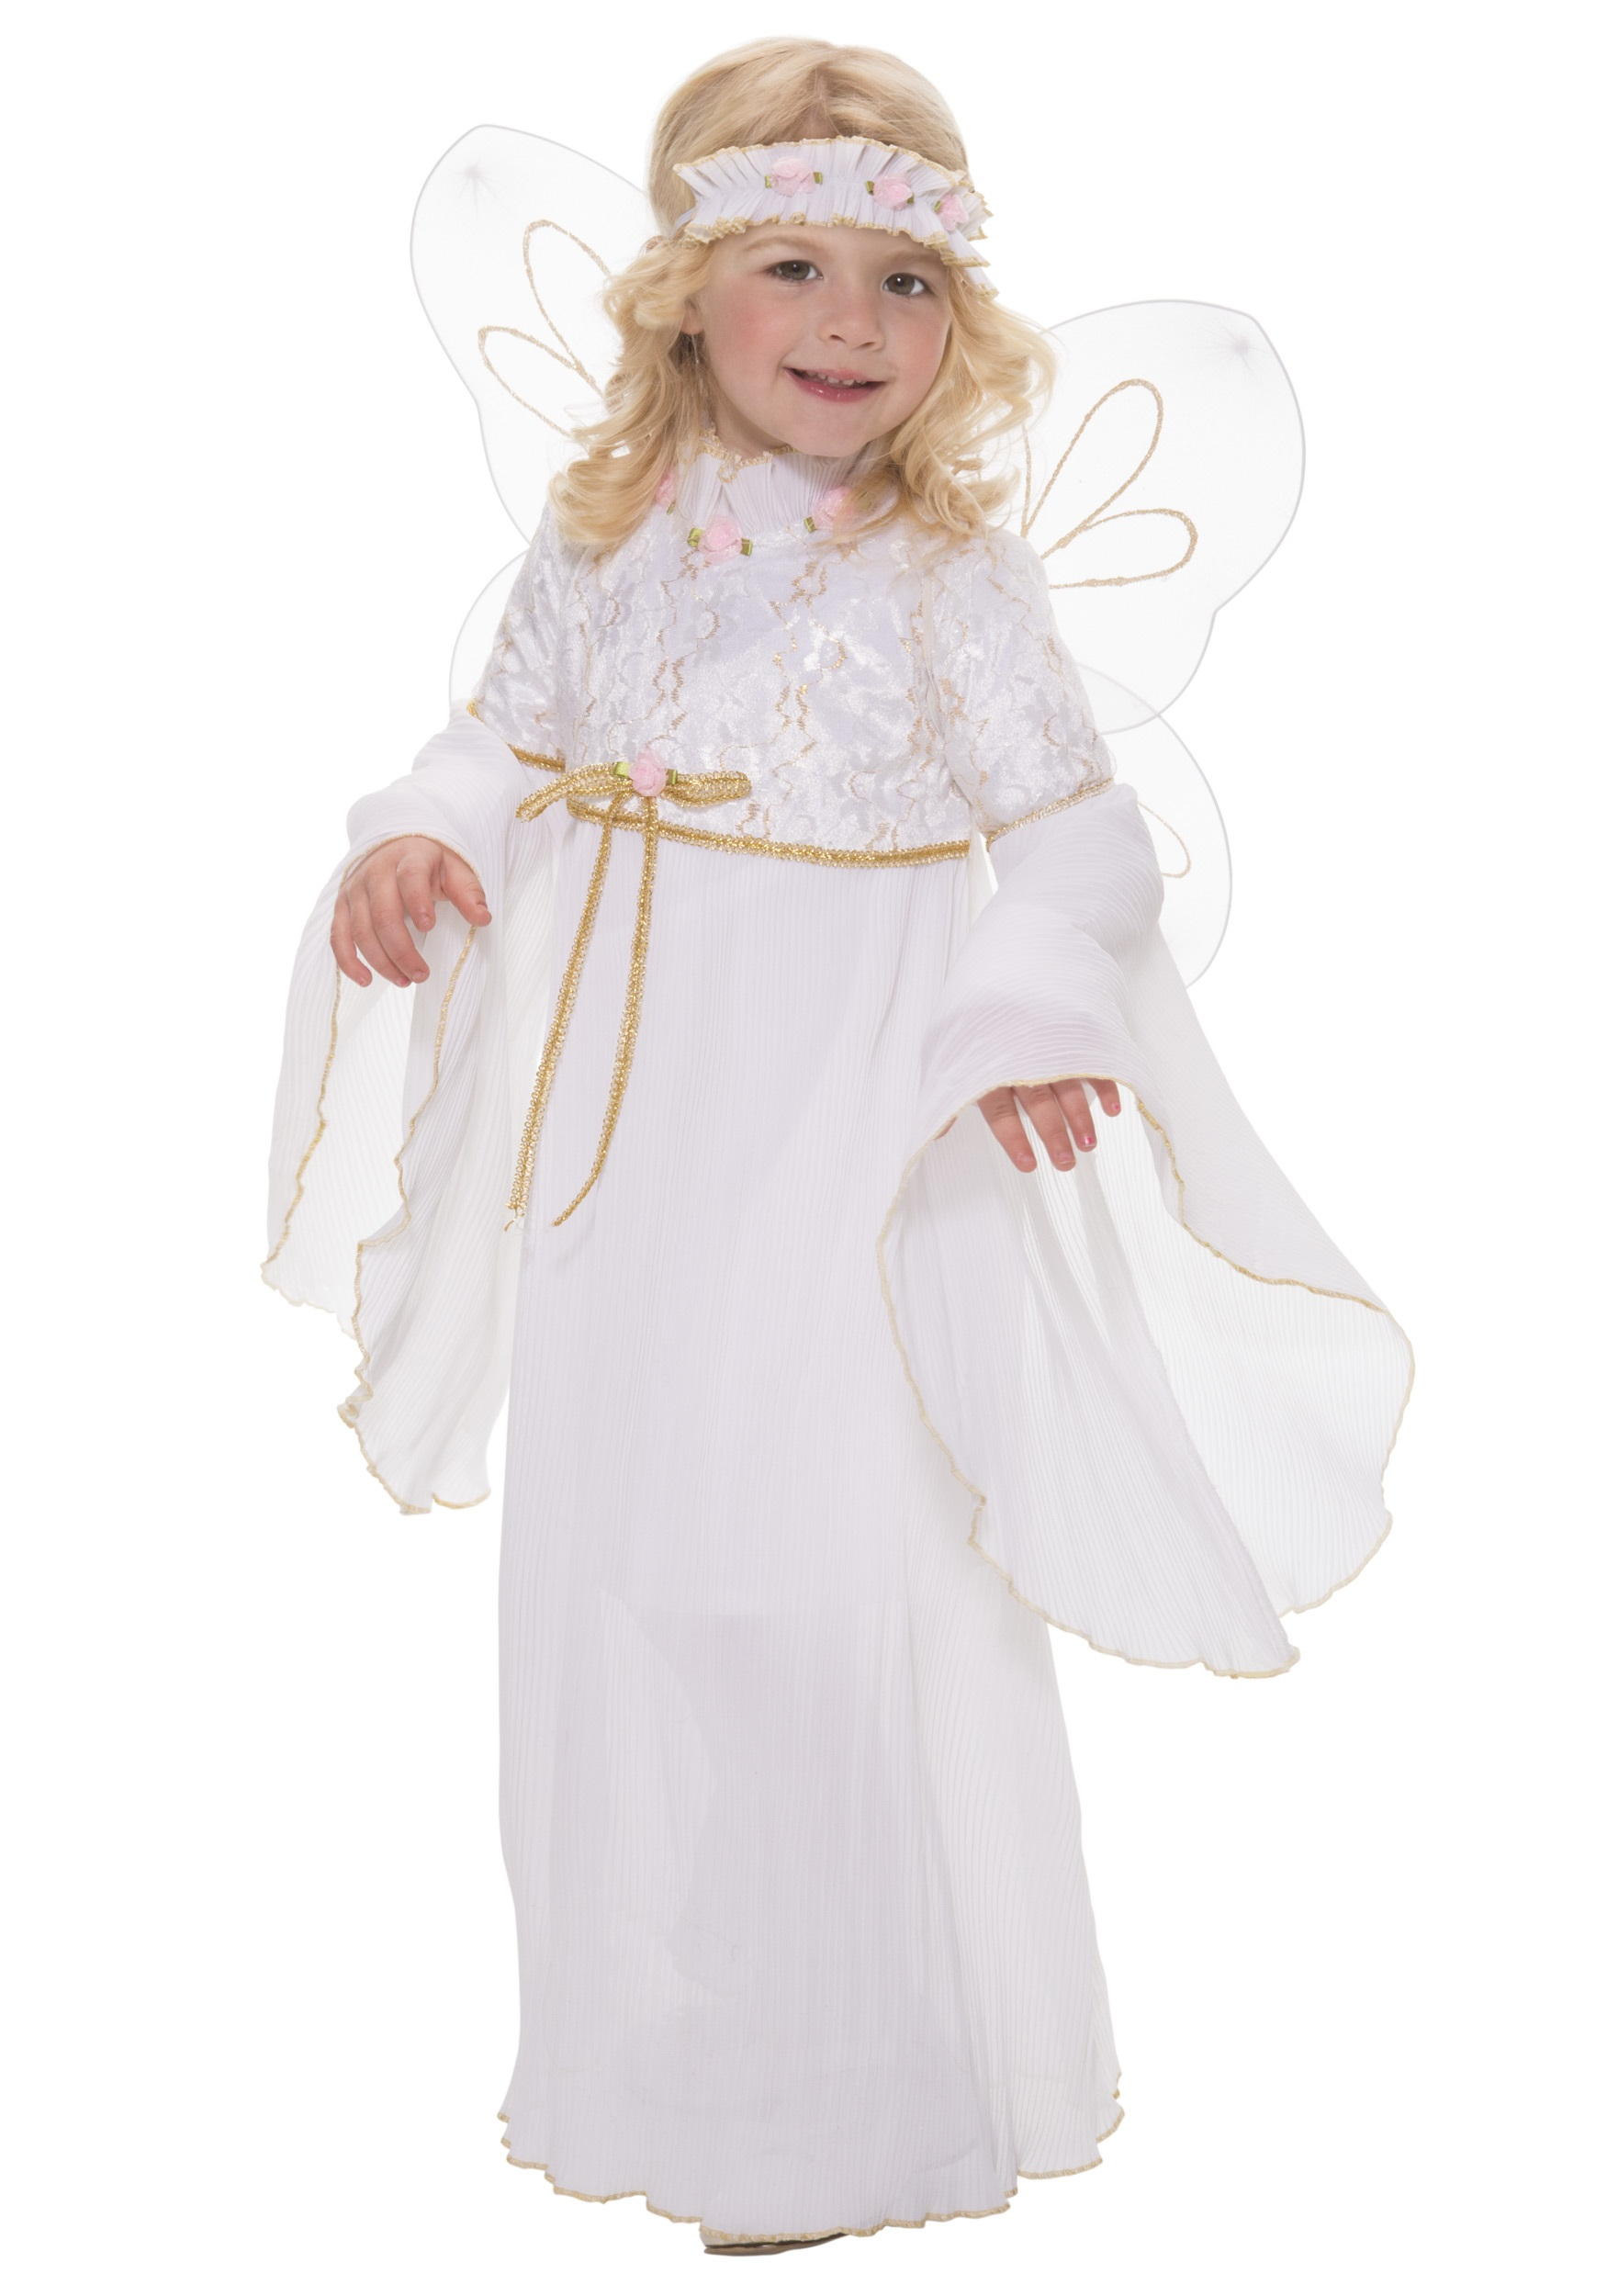 aaecb73a019 Angel Child Costume [FUN1685TD] - HK$388.00 : LET'S PARTY COMPANY